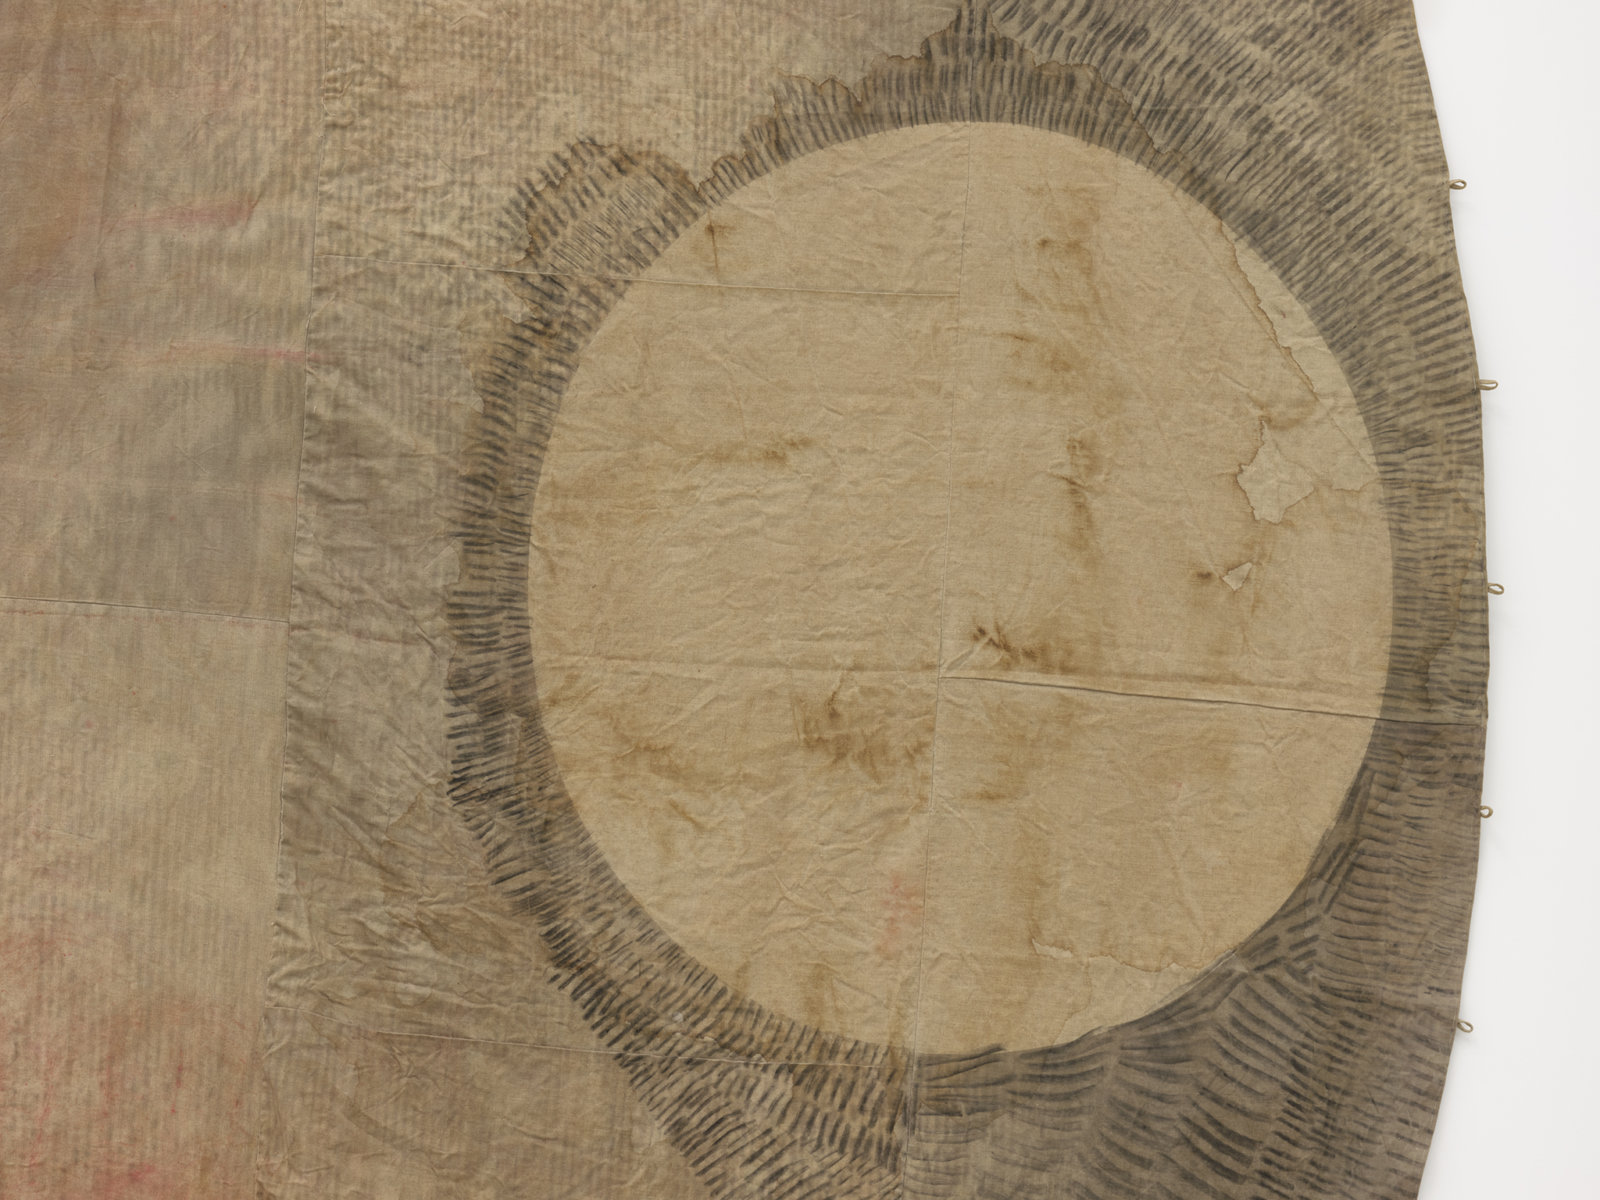 Duane Linklater, winter in america_no door_âkamenimok (detail), 2020, digital print on hand dyed linen, black tea and sumac dye, charcoal, cup and saucer ochre, iron red pigment, dandelion, nails, 218 x 312 x 6 in. (554 x 793 x 15 cm)